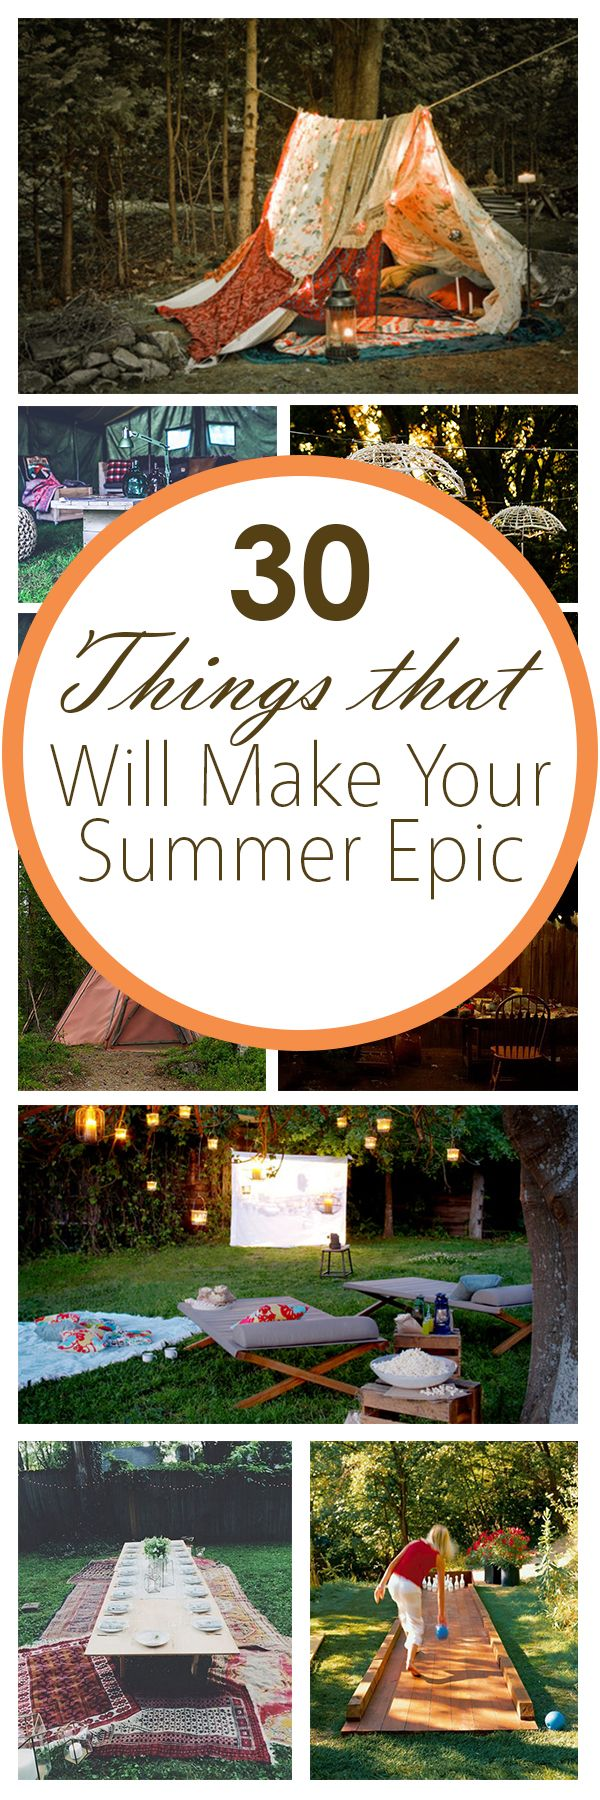 Summer, summer vacation, outdoor living, popular pin, outdoor entertainment, outdoor parties.